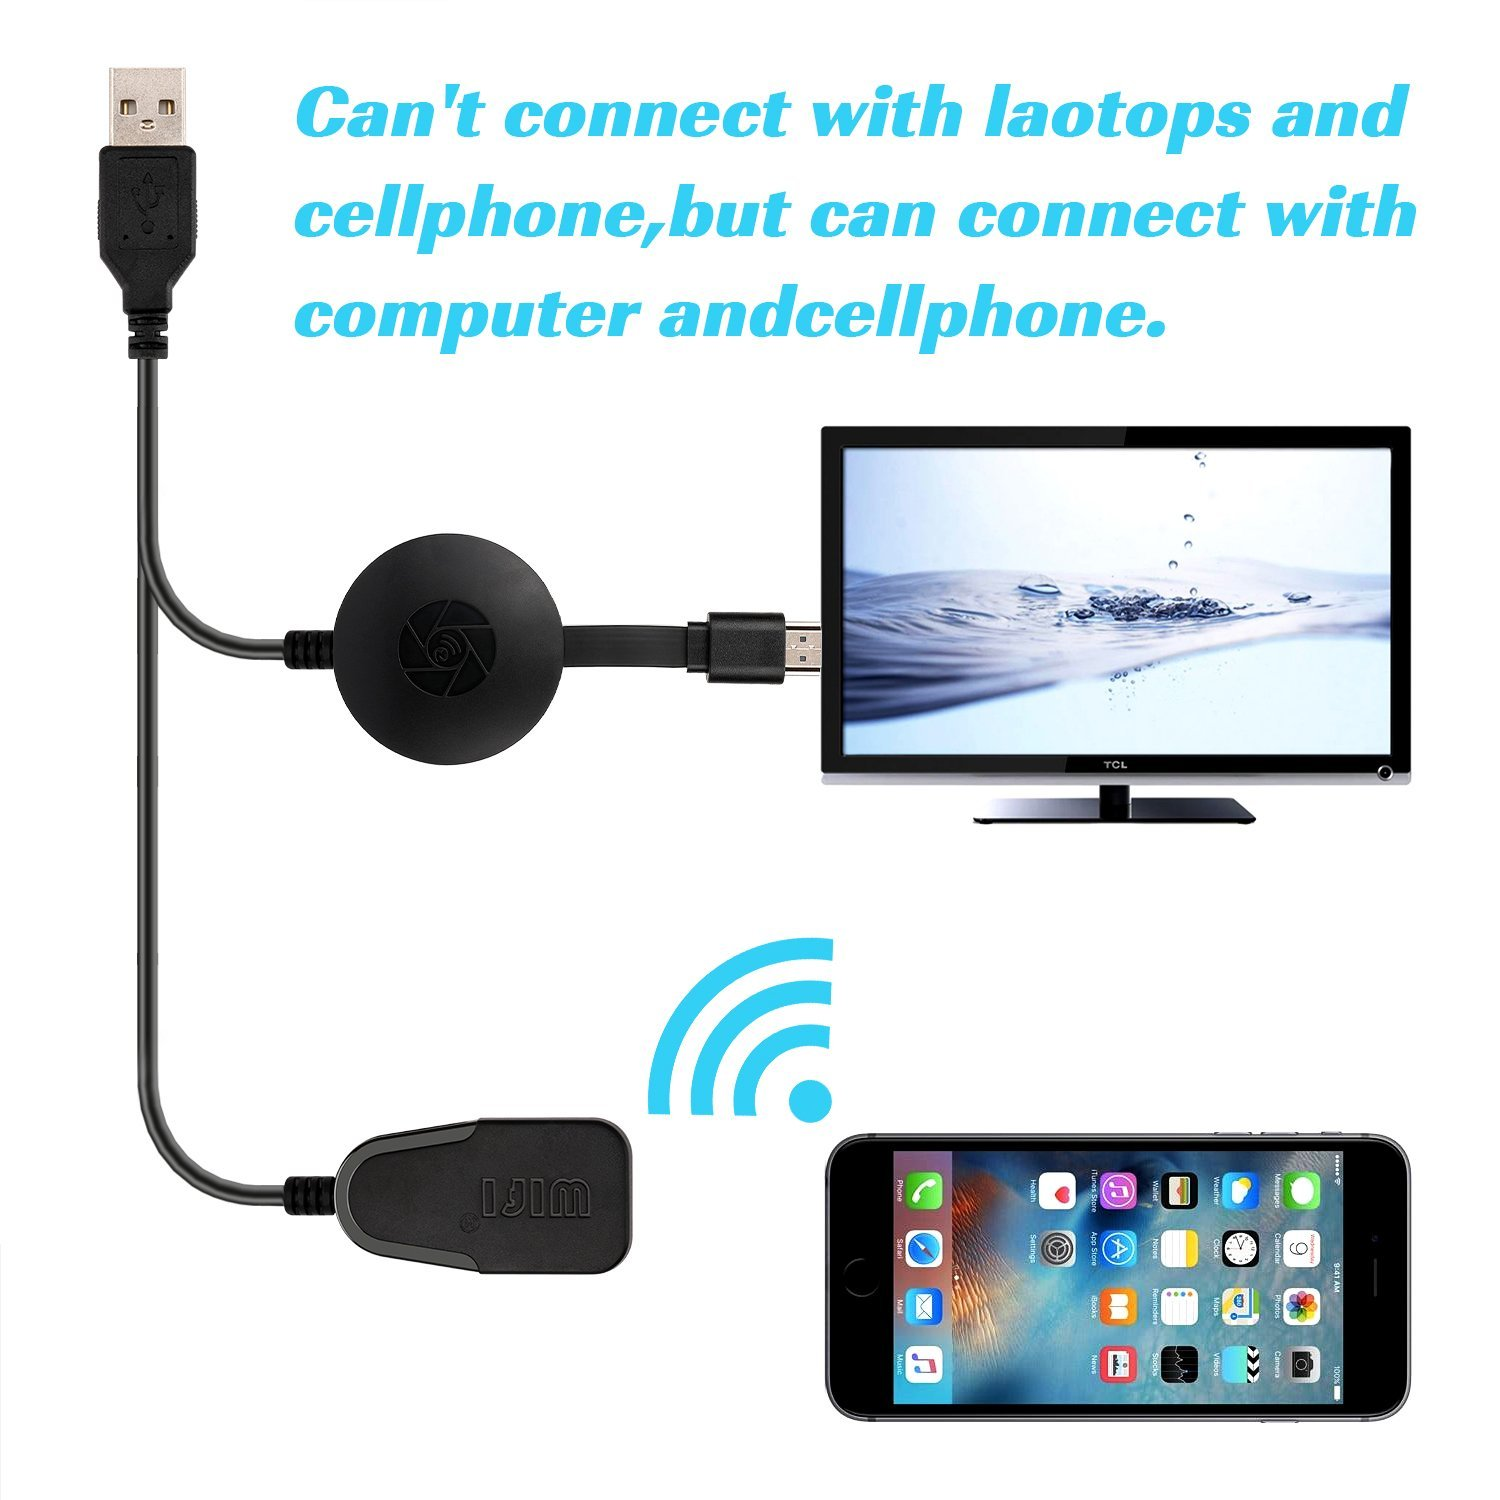 Wireless Display Dongle,WIFI Portable Display Receiver 1080P HDMI Miracast Dongle for iOS iPhone iPad/Mac/Android Smartphones